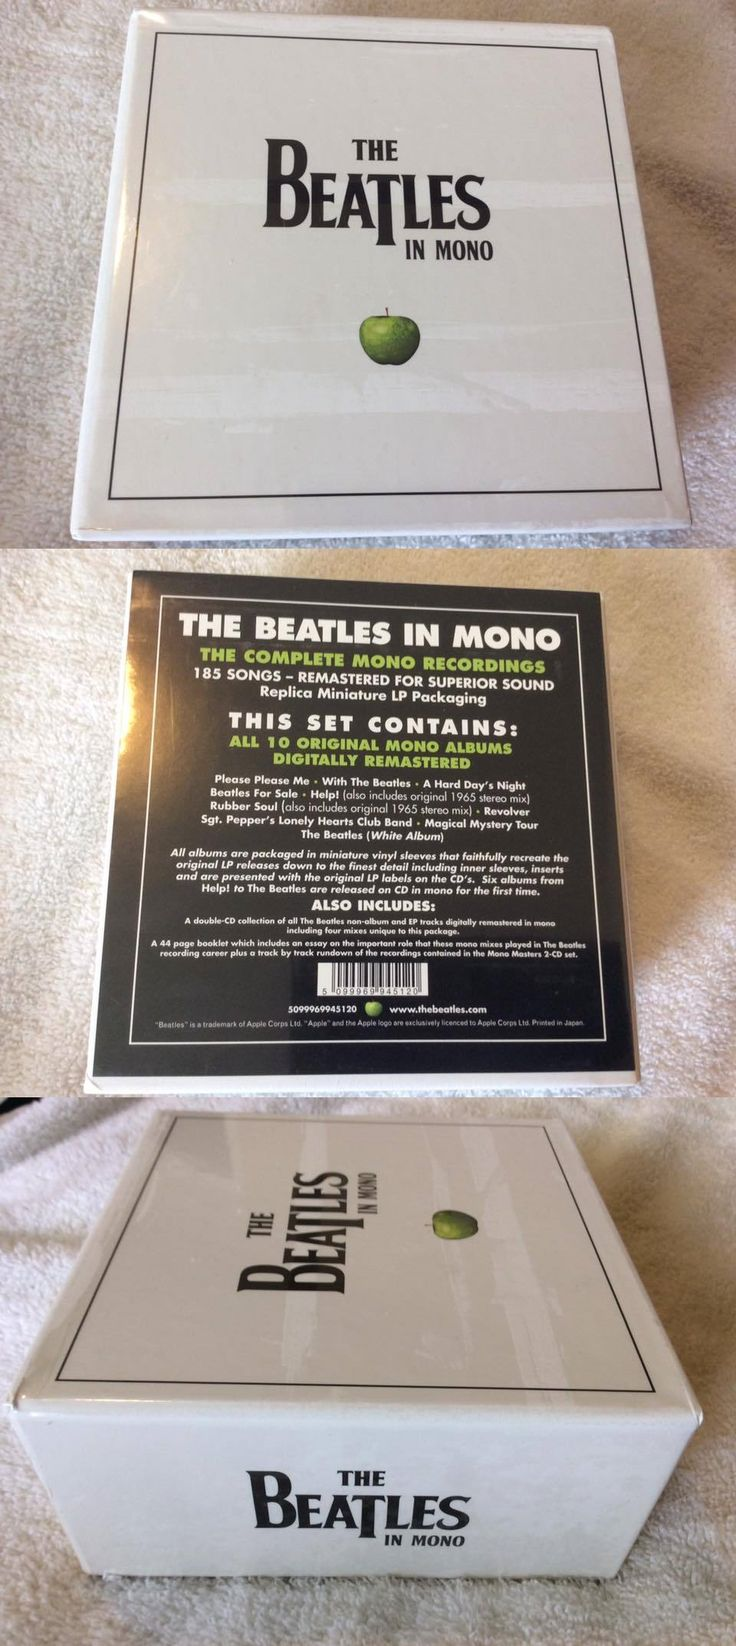 Music Albums: The Beatles In Mono Cd Box Set - 100% Authentic! - Brand New Factory Sealed! -> BUY IT NOW ONLY: $112.99 on eBay!